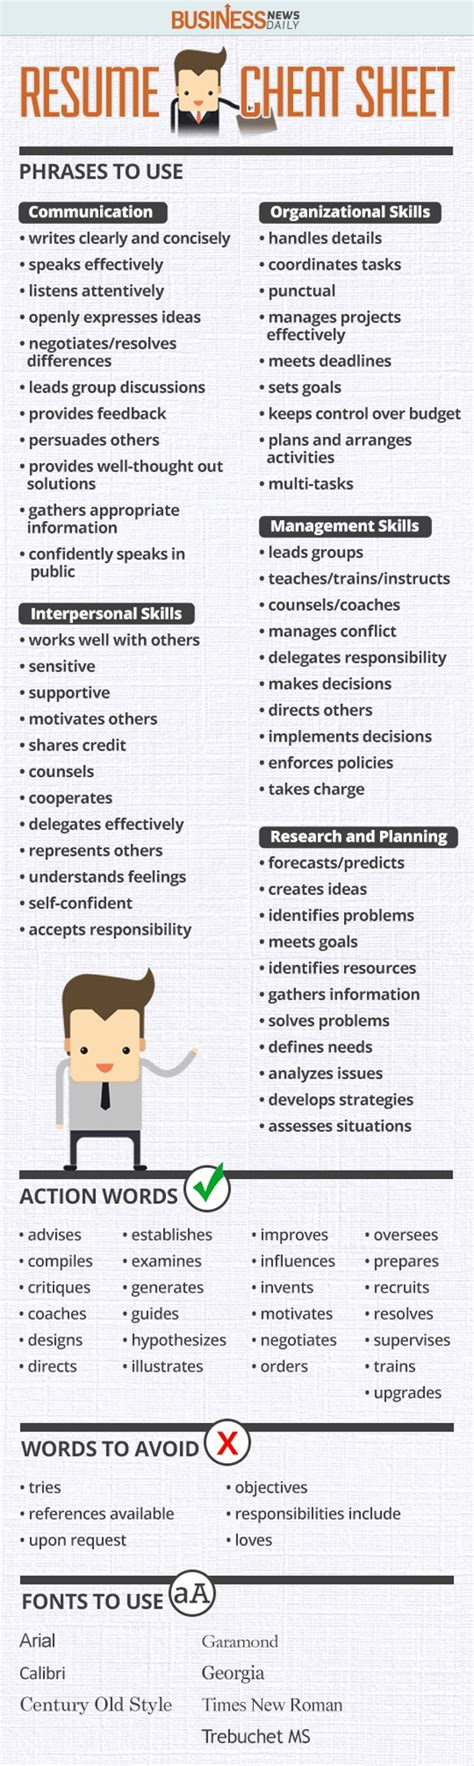 resume power words the resume sheet your career can t live without